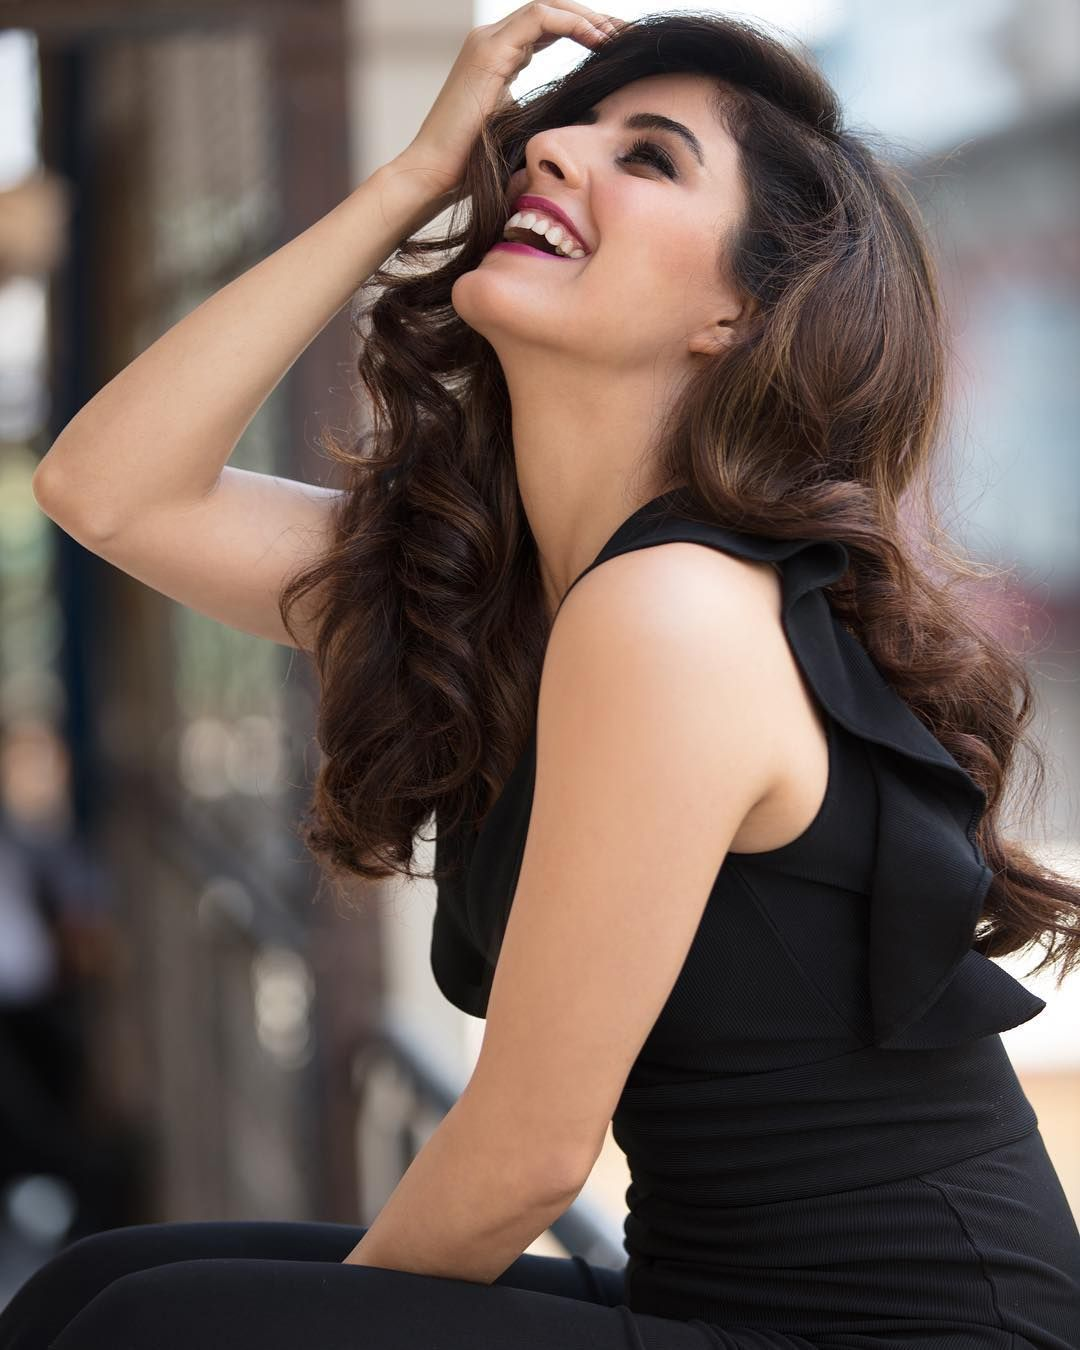 Isha Talwar Wallpapers 1080P Hd Best Pictures, Images &Amp; Photos